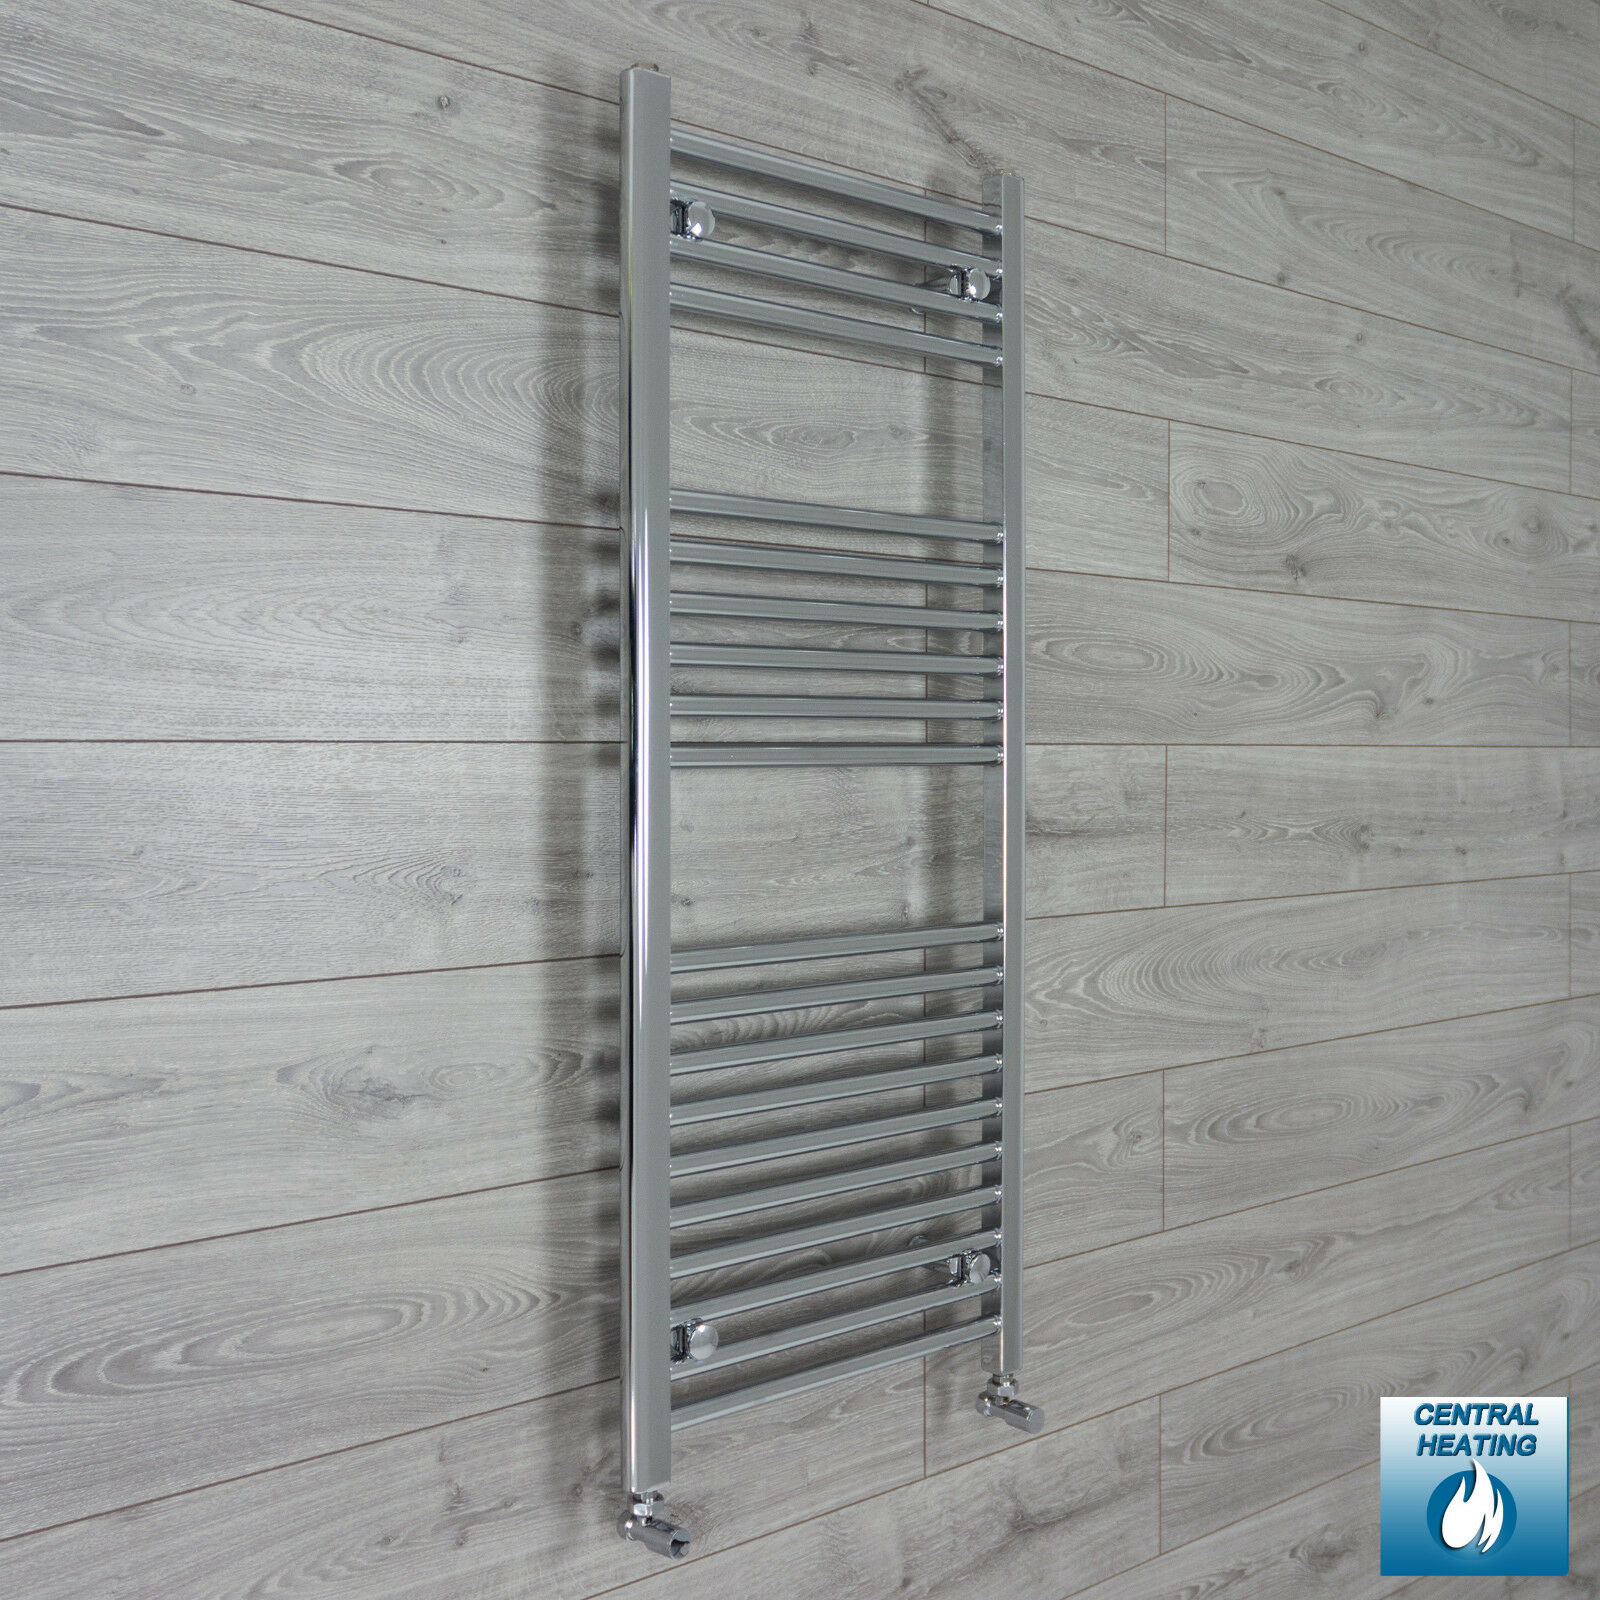 600mm Wide 1200mm High Flat Chrome Heated Towel Rail Radiator Central Heating